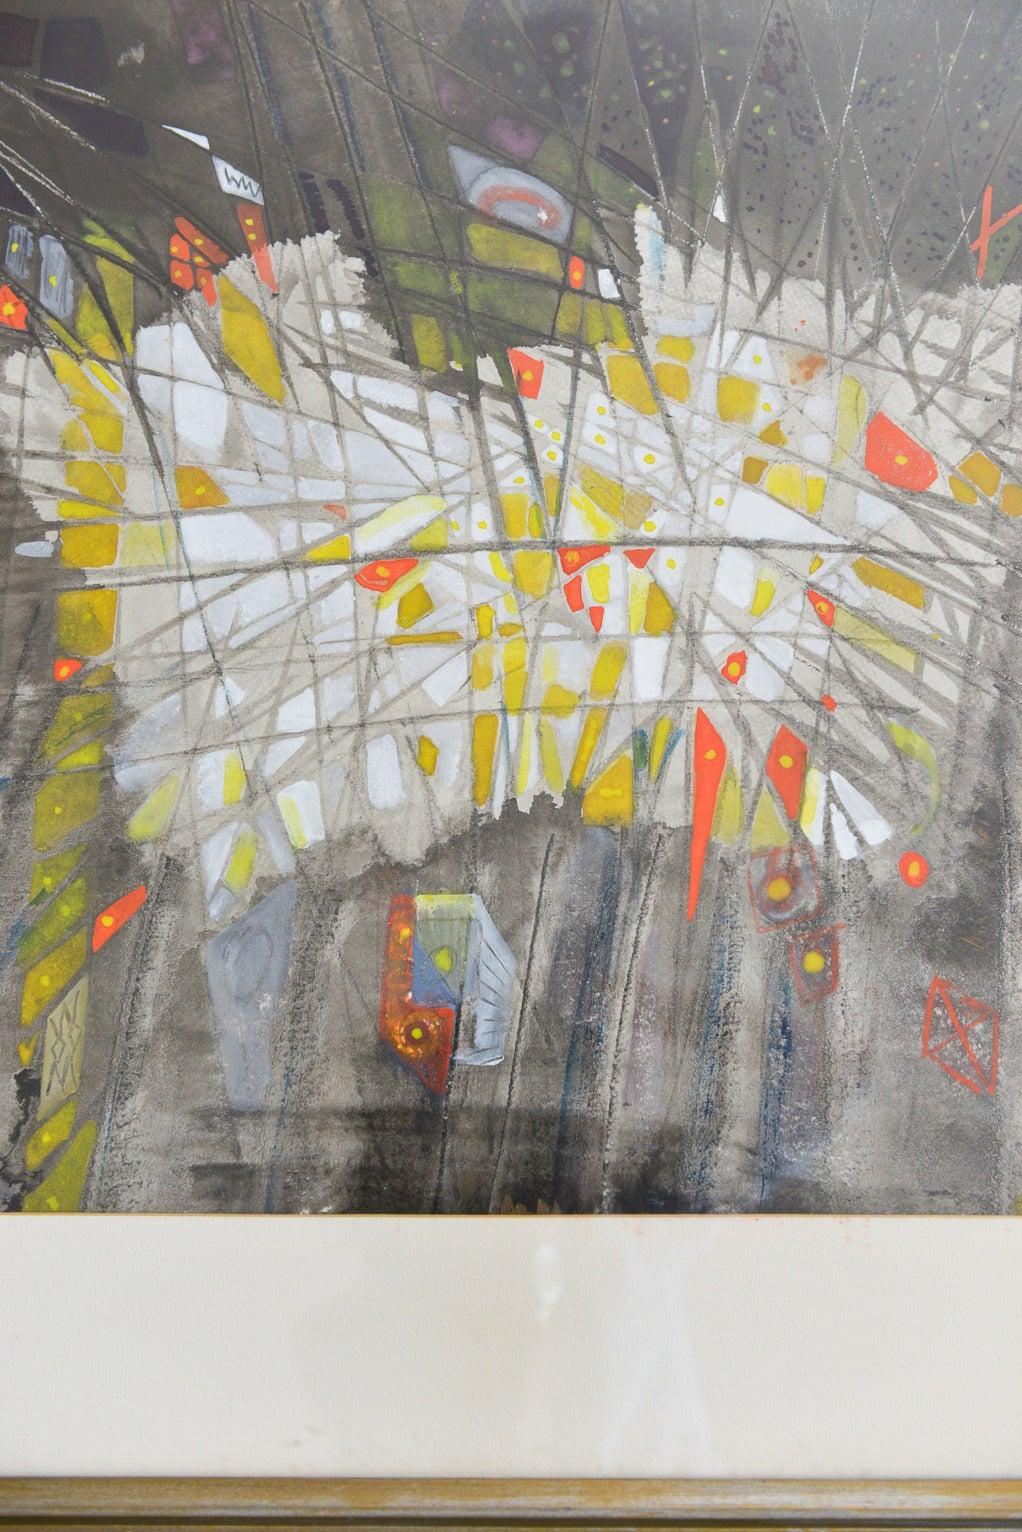 This original abstract watercolor on canvas is signed by the artist Emily B. Johnson '61.  Wonderful color and subject matter, framed in a vintage frame with linen mat under glass. Nice neutral tones with a splash of orange, yellow and greens. Nice